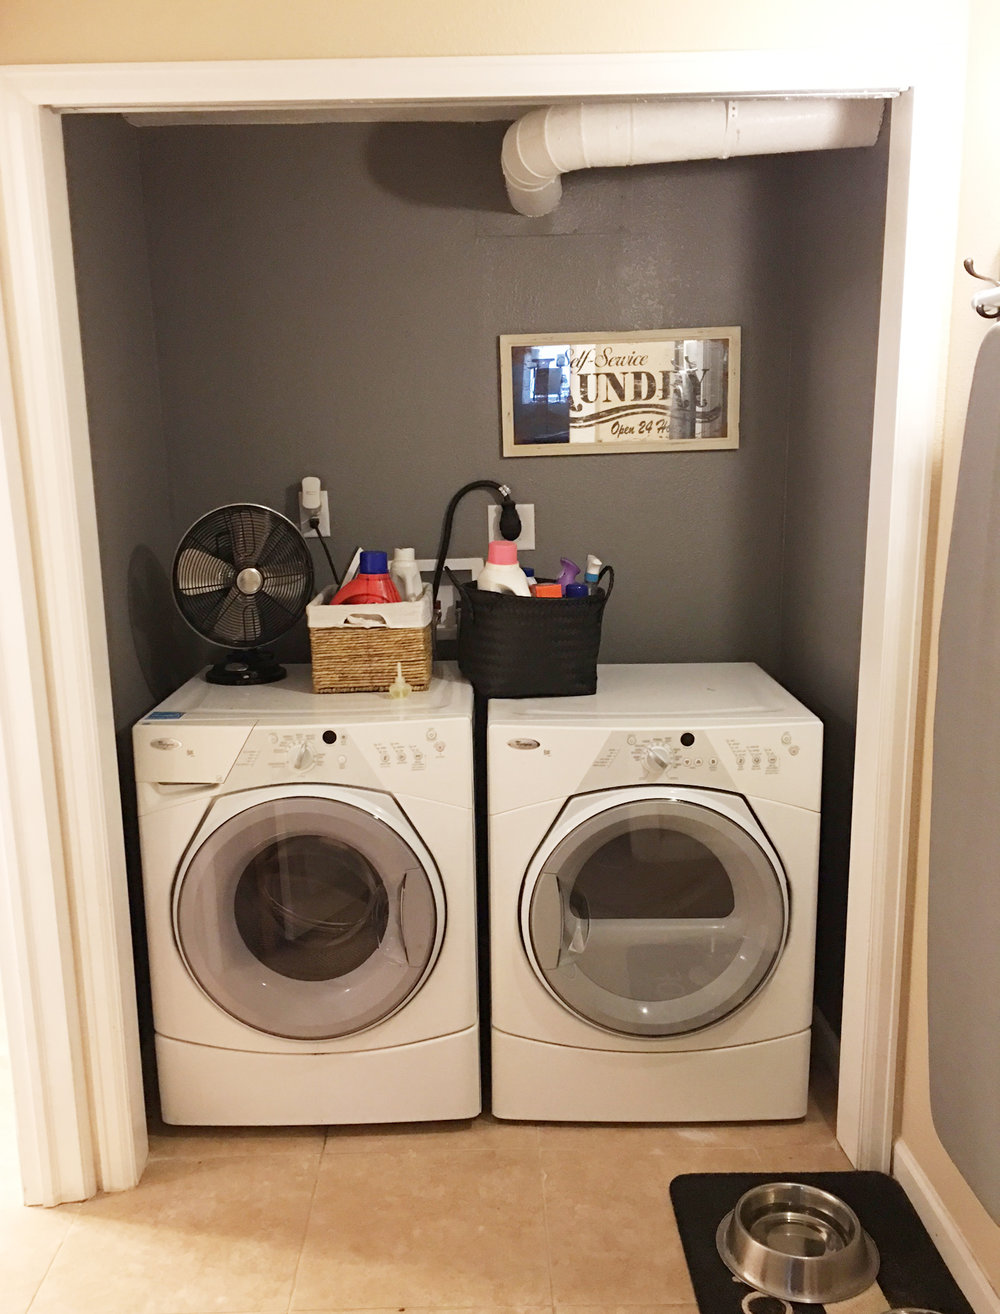 Laundry room makeover the plans rook design co can you even say dream if all you have is a nook hey at least its better than out in our garage prepare yourself for some reallife images solutioingenieria Choice Image